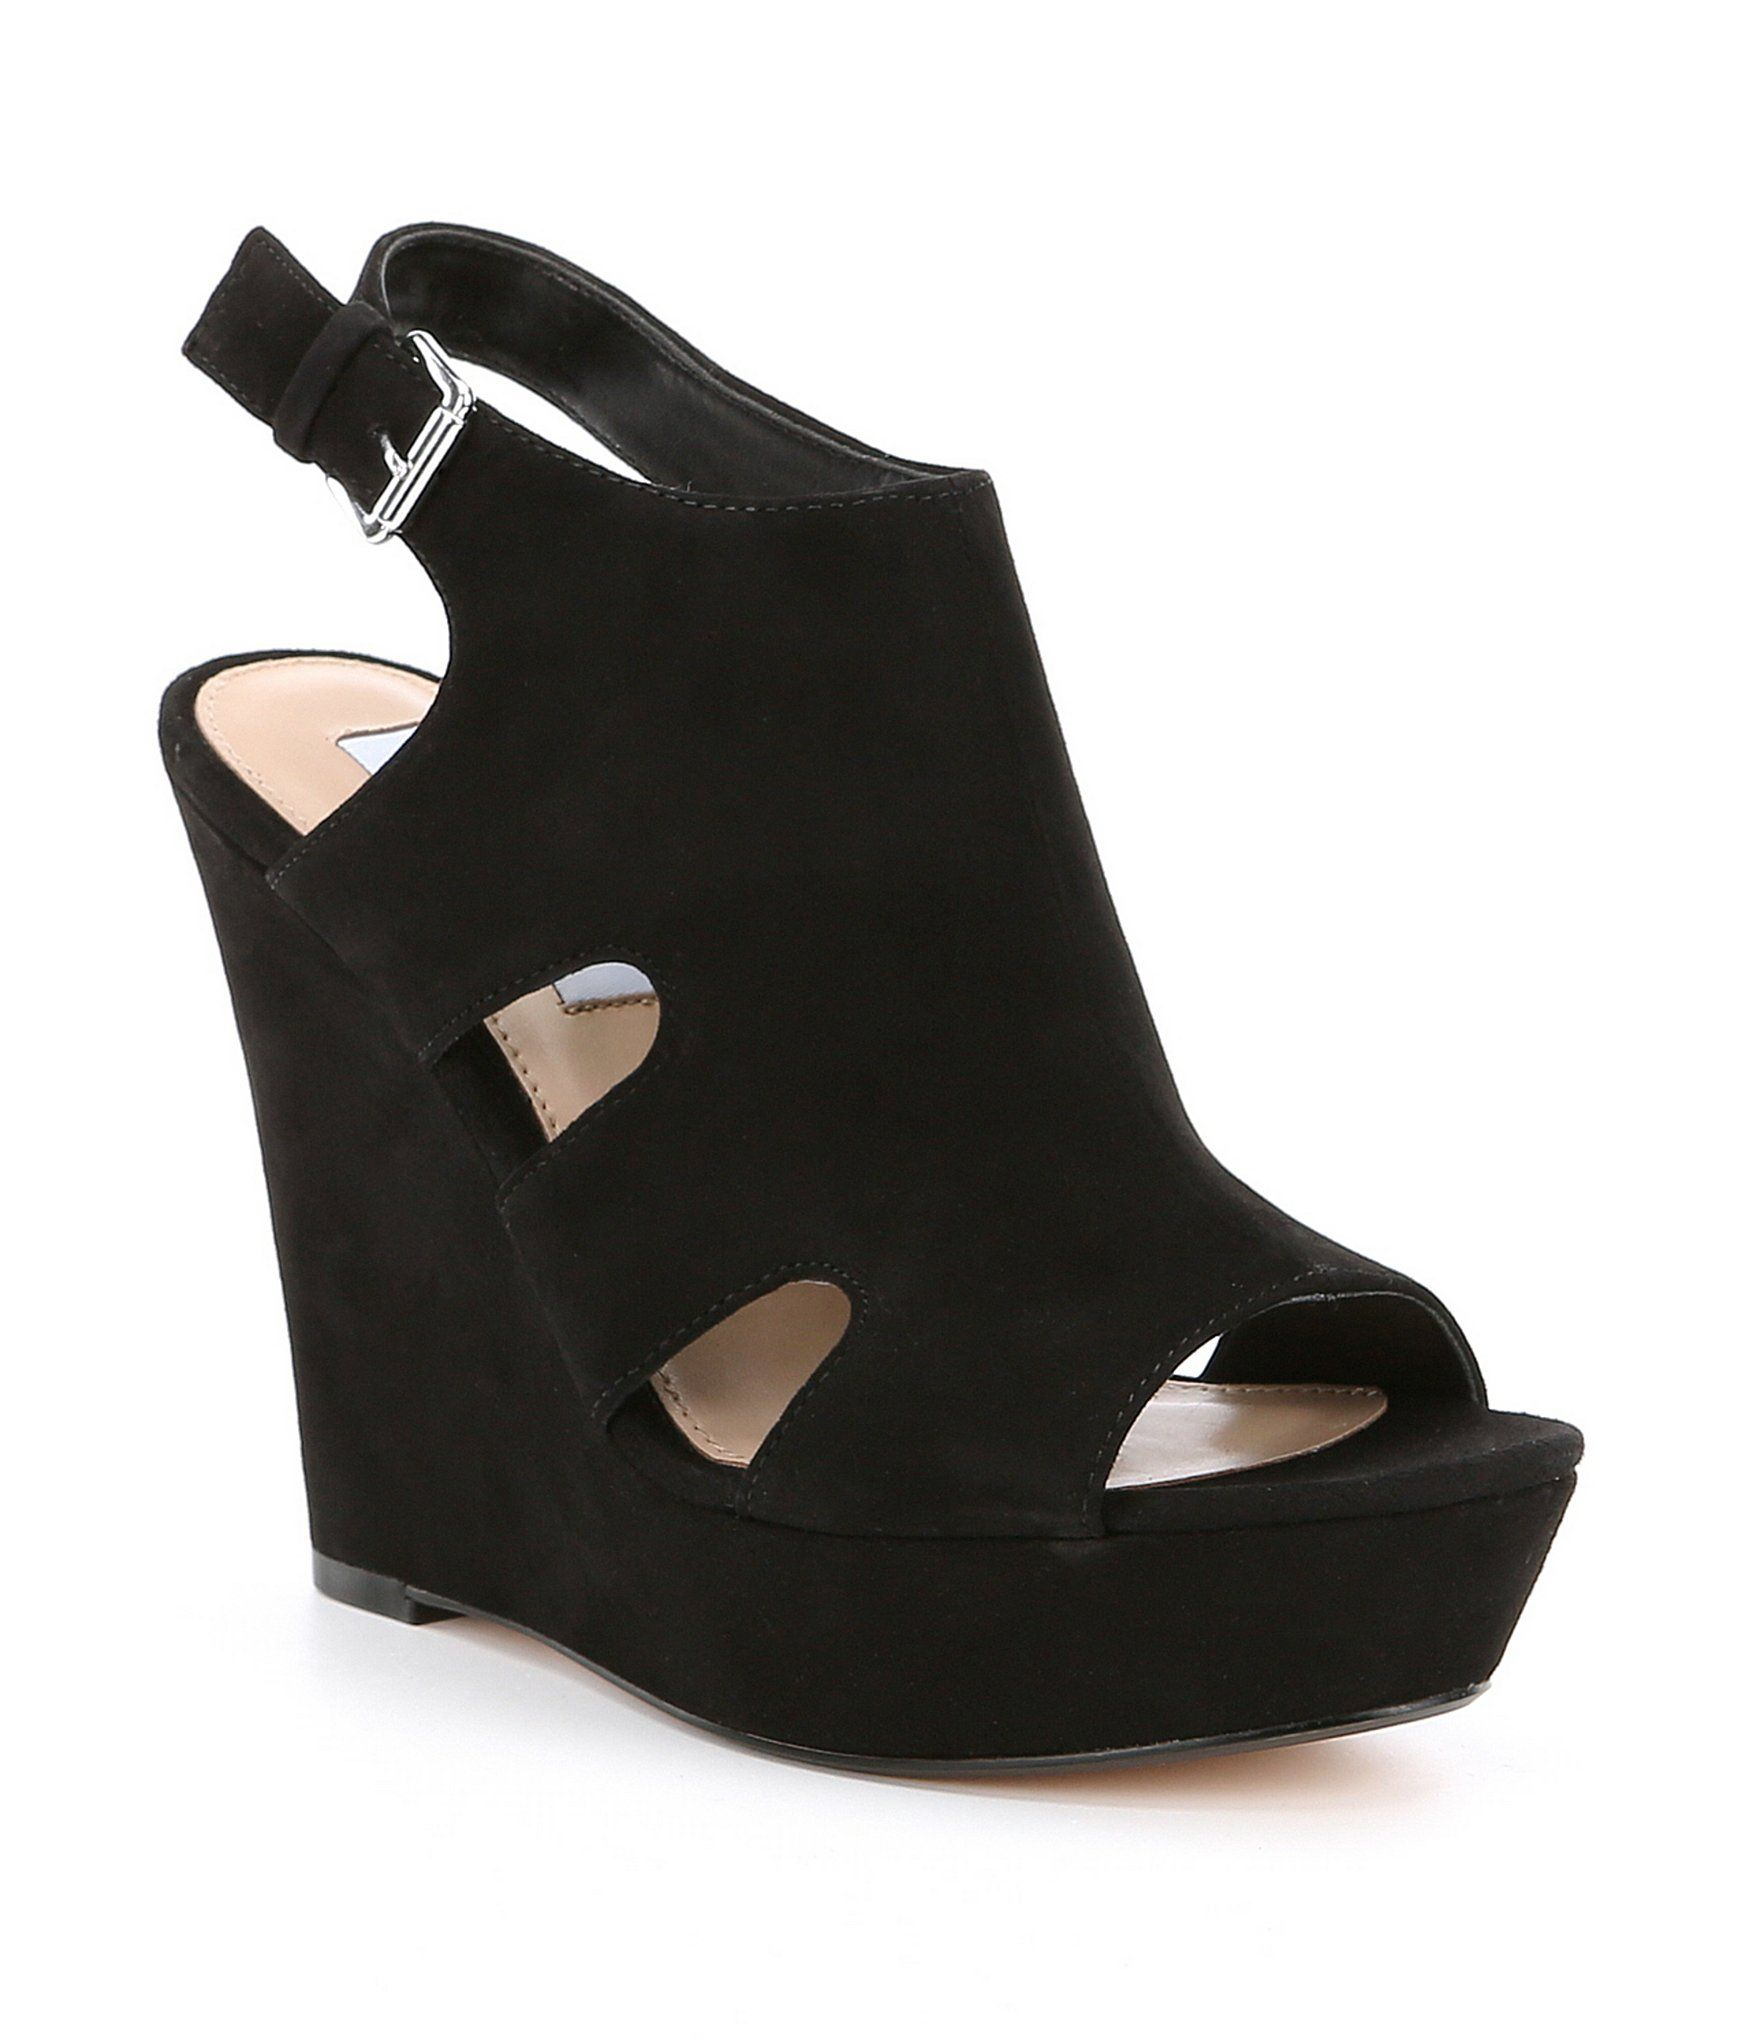 New Fashion Shoes Women Steve Madden Emmy Suede Buckle Closure Wedges Black Suede